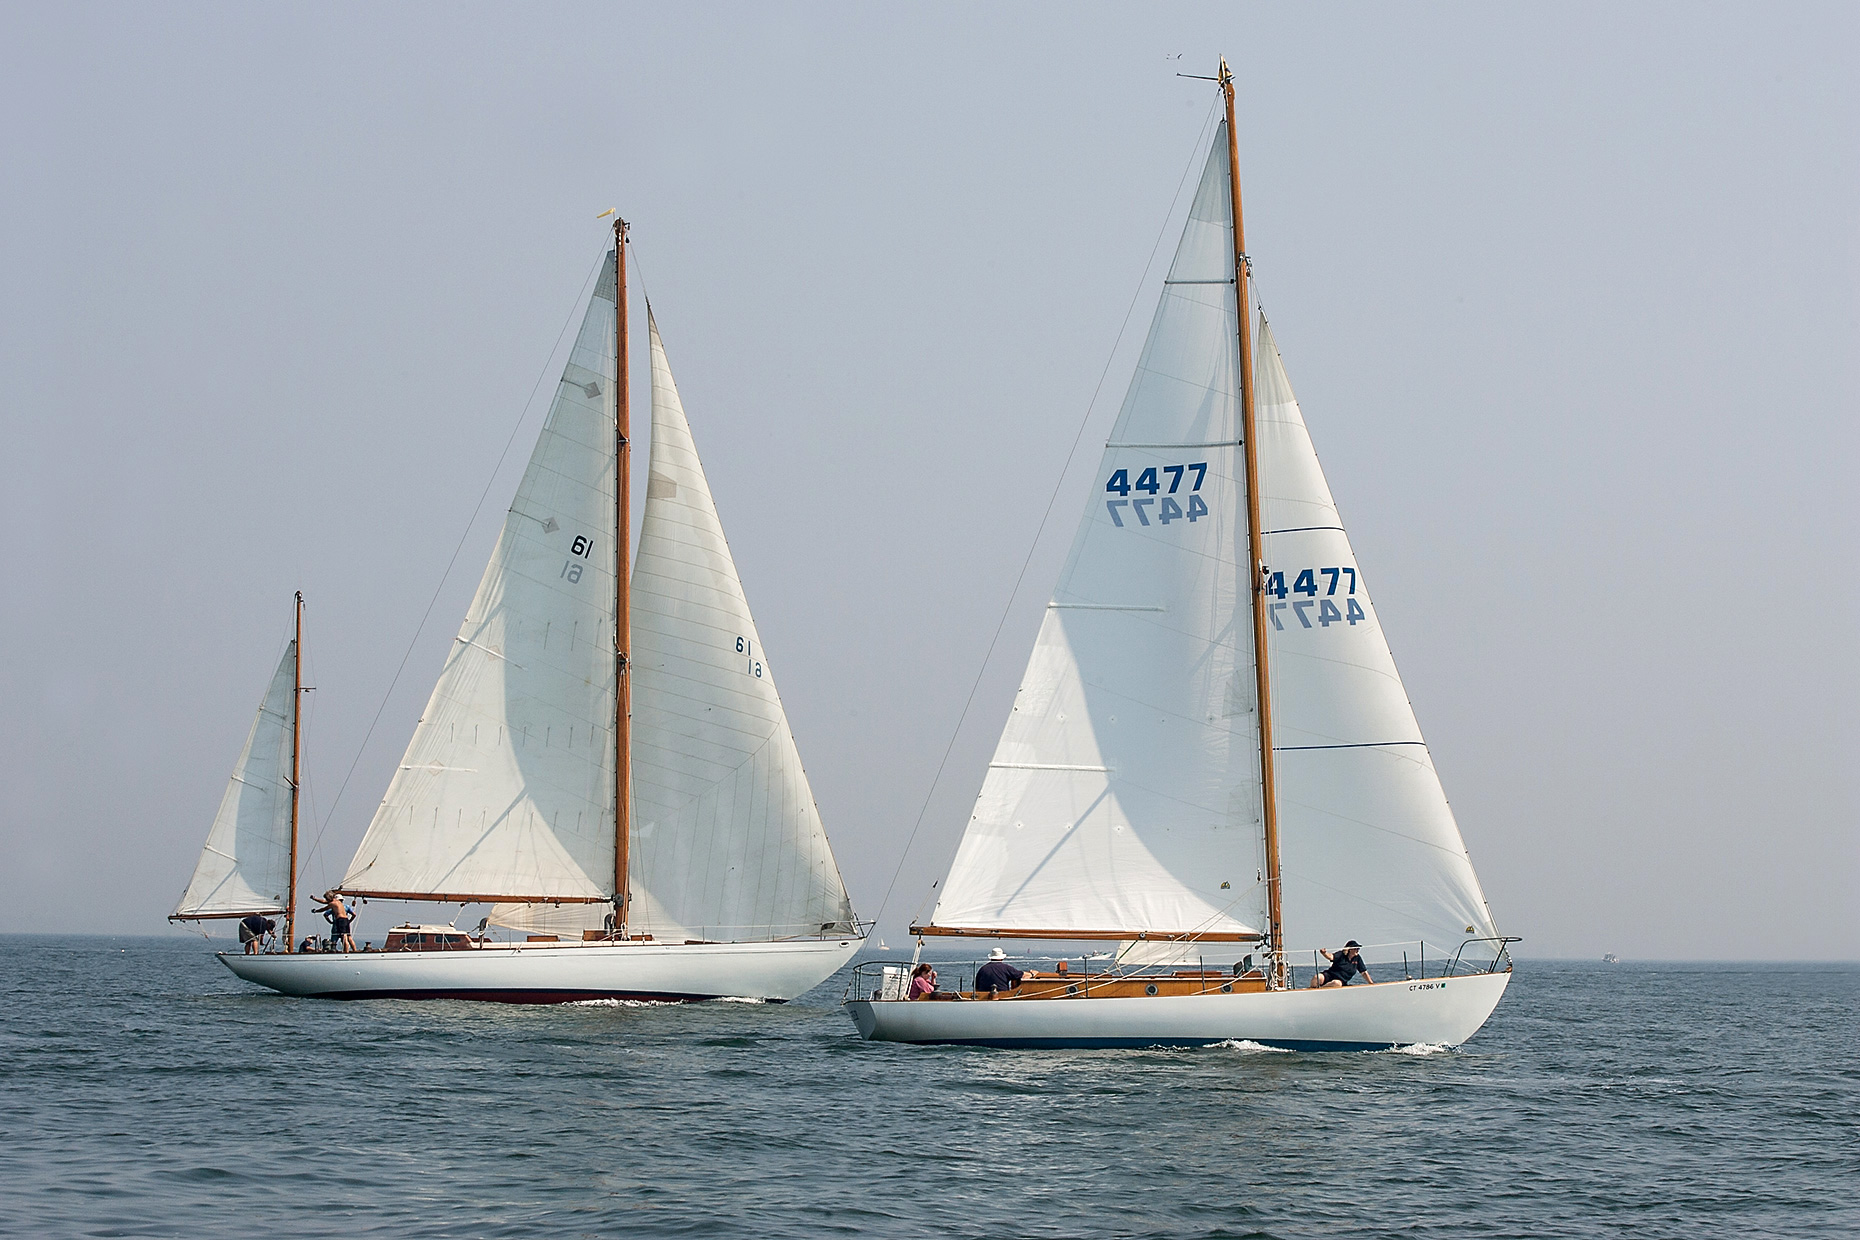 Morgan-Point-Invitational-Boat-Race-Fishers-Island Sound-Noank-Cresta II-Mischief